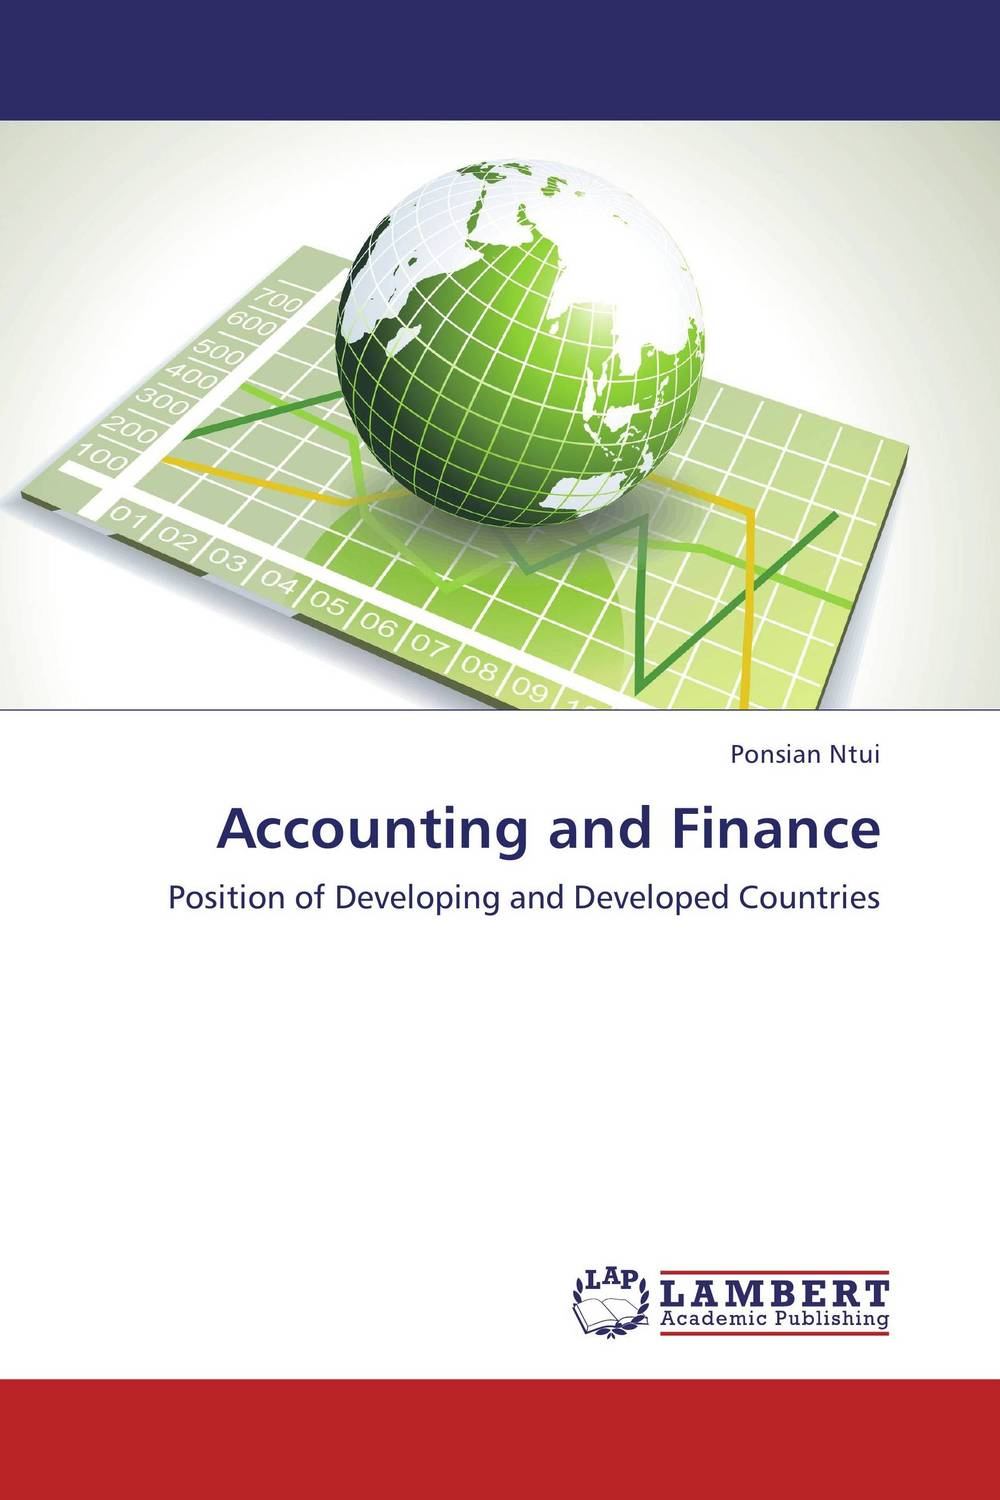 Accounting and Finance international finance for developing countries